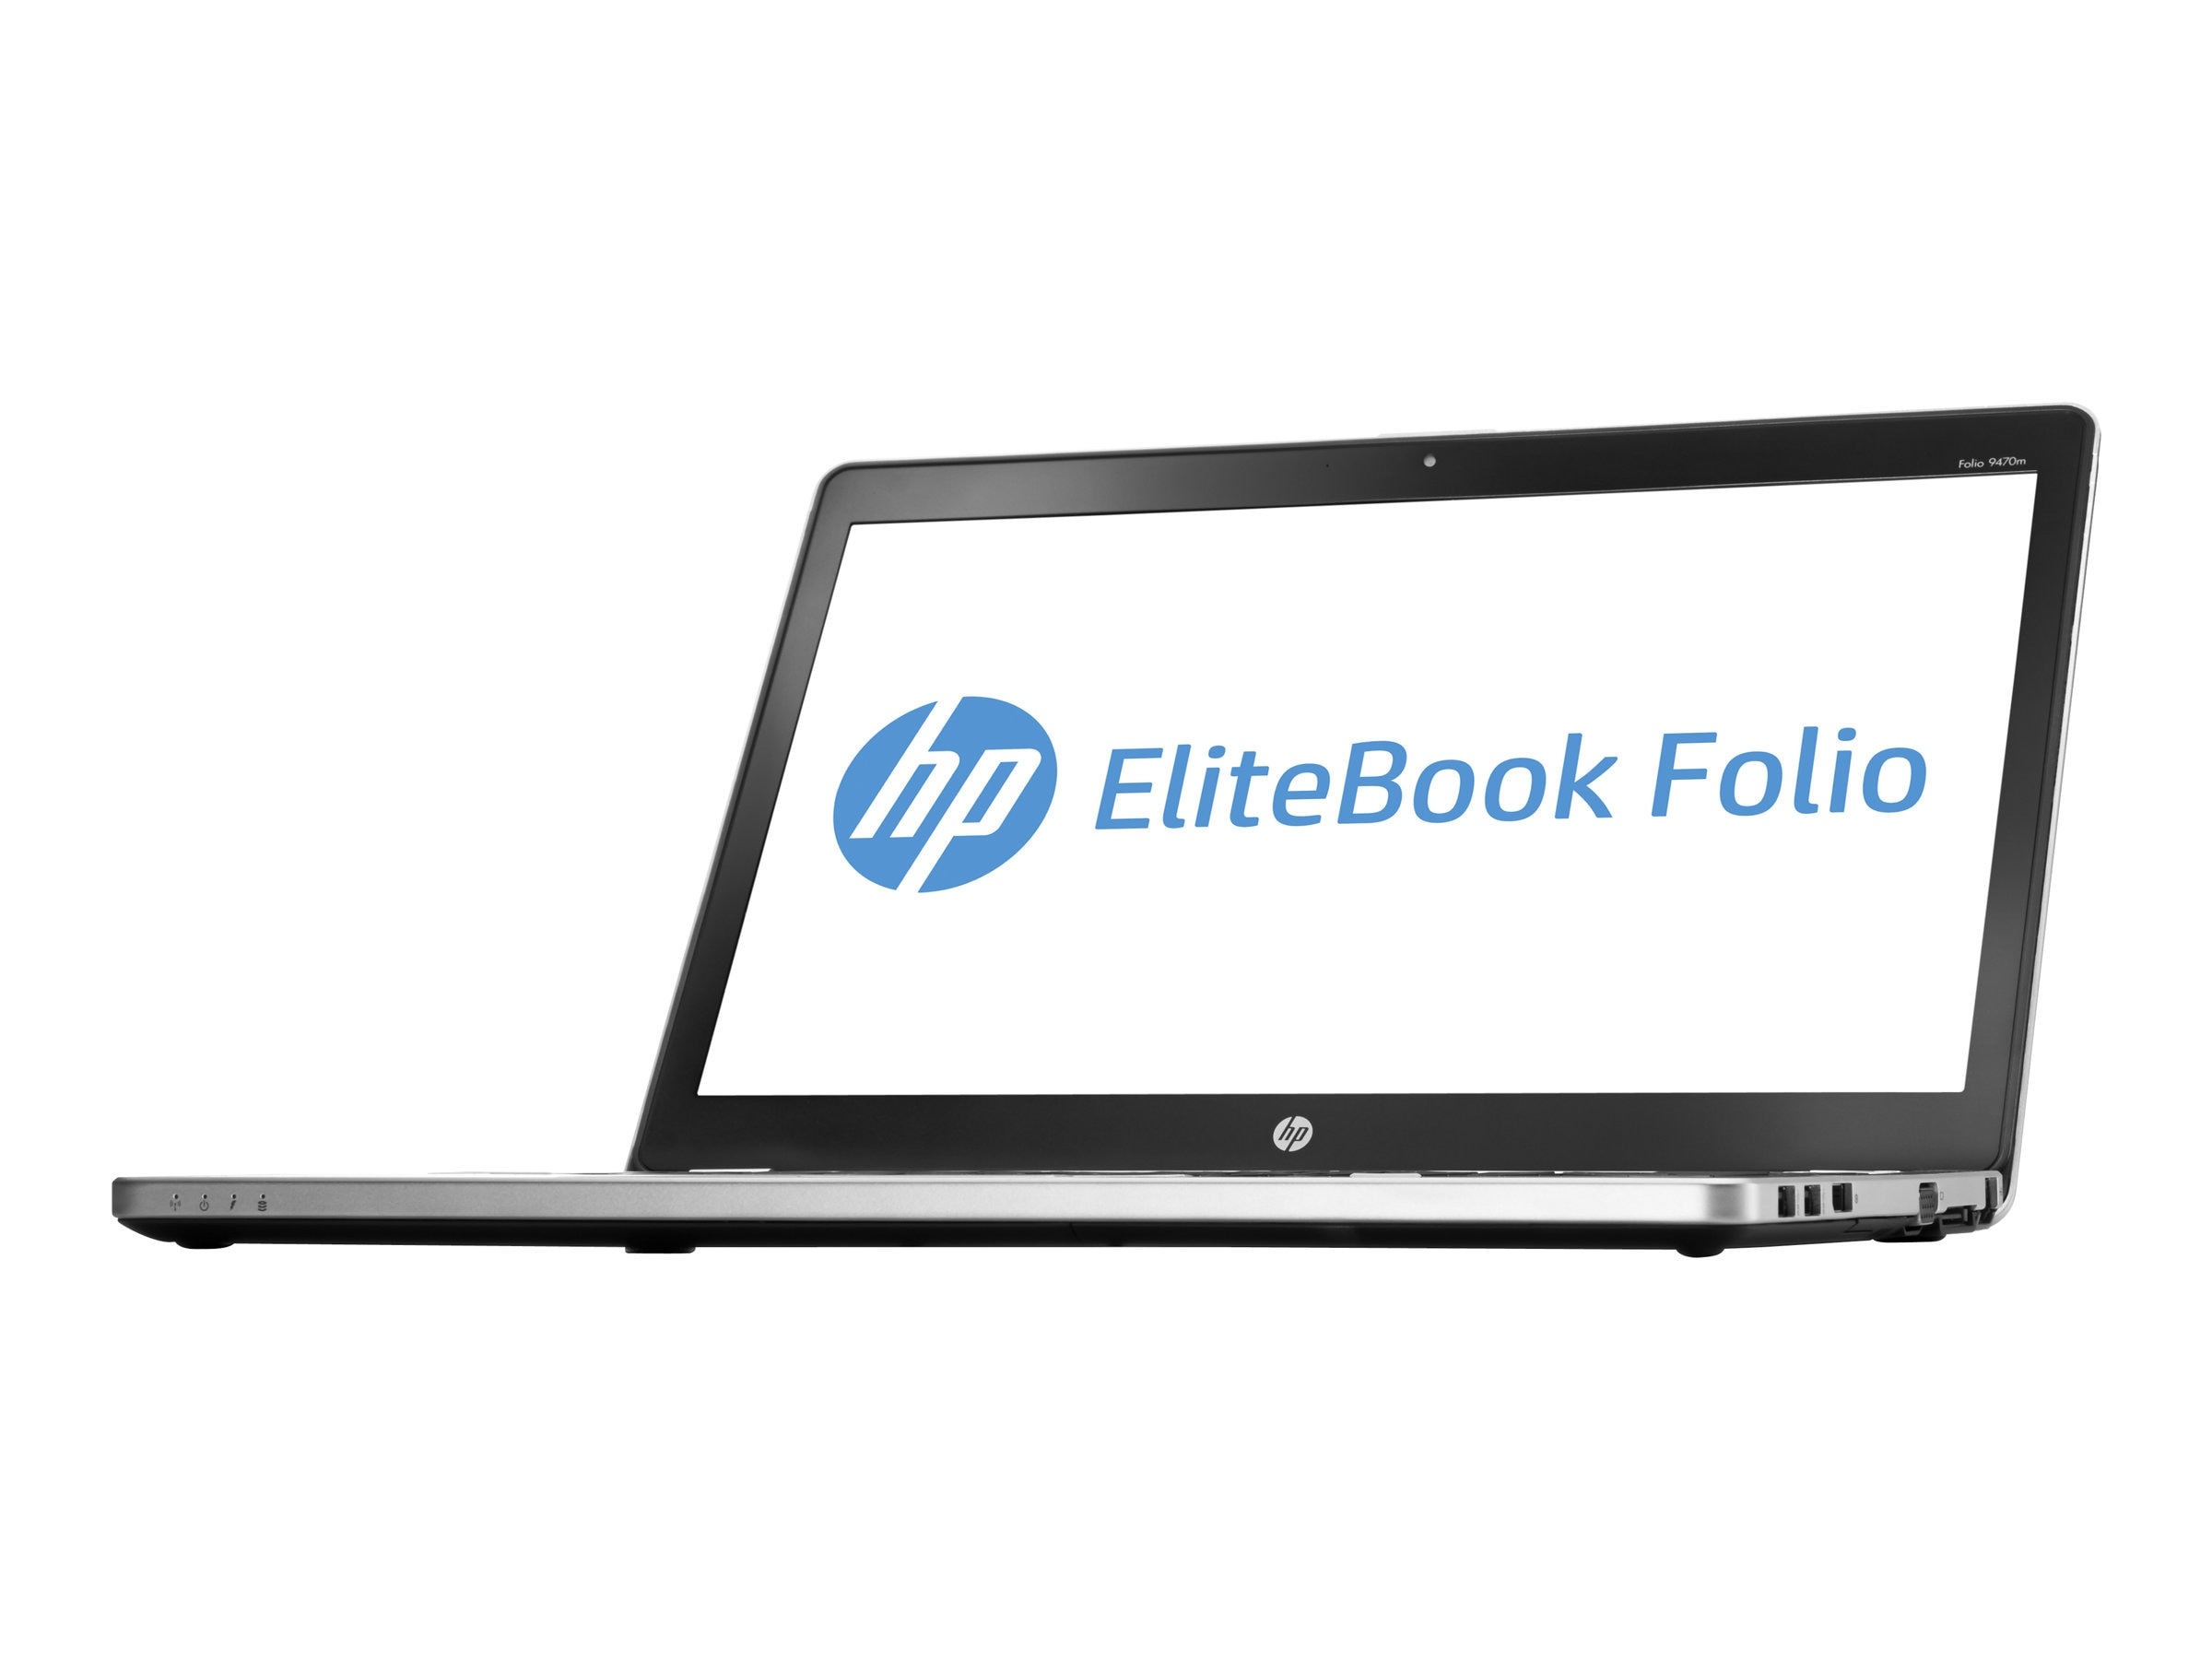 HP EliteBook Folio 9470m Core i5-3437U 1.9GHz 8GB 180GB SSD abgn BT WC 4C 14 HD W7P64, D5V23UP#ABA, 15173326, Notebooks